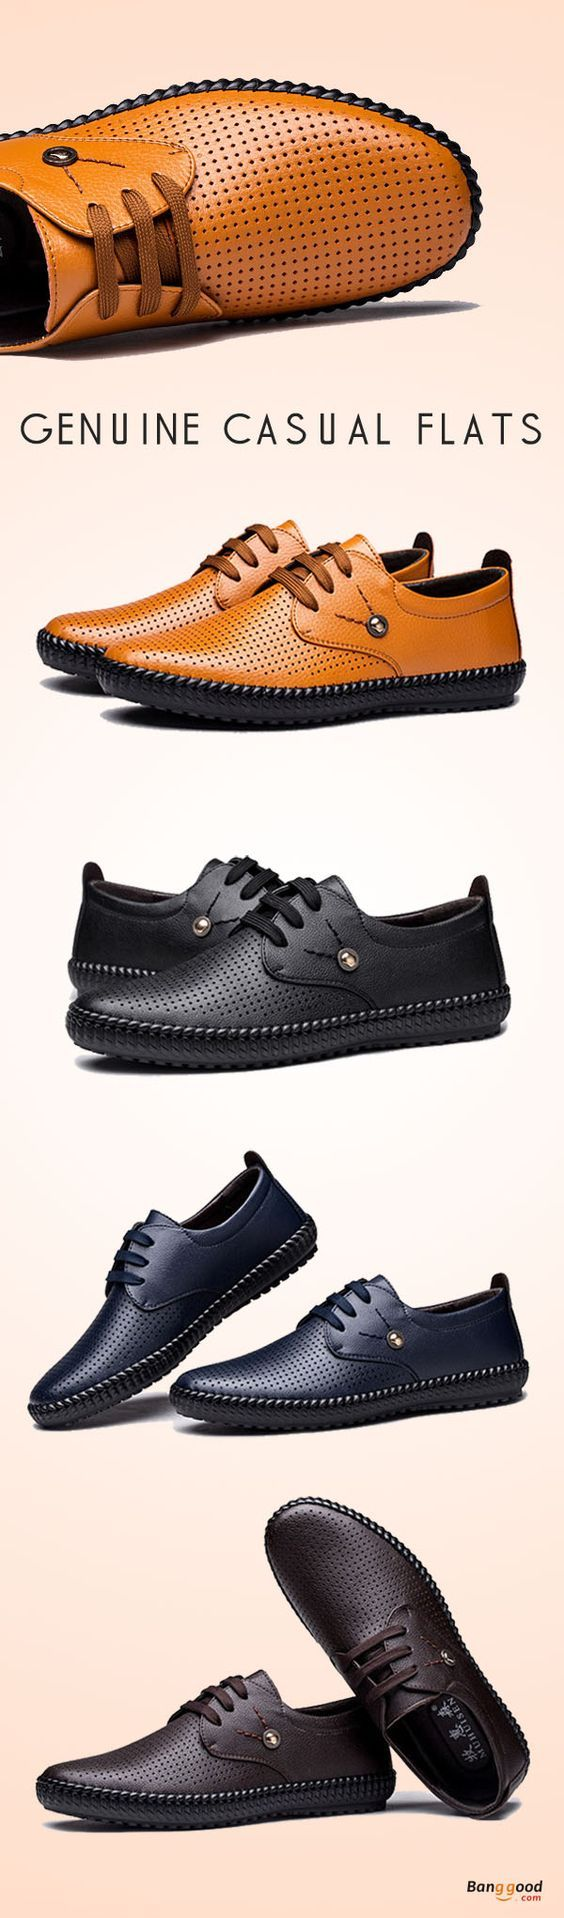 best wants images on pinterest dress shoes menswear and casual